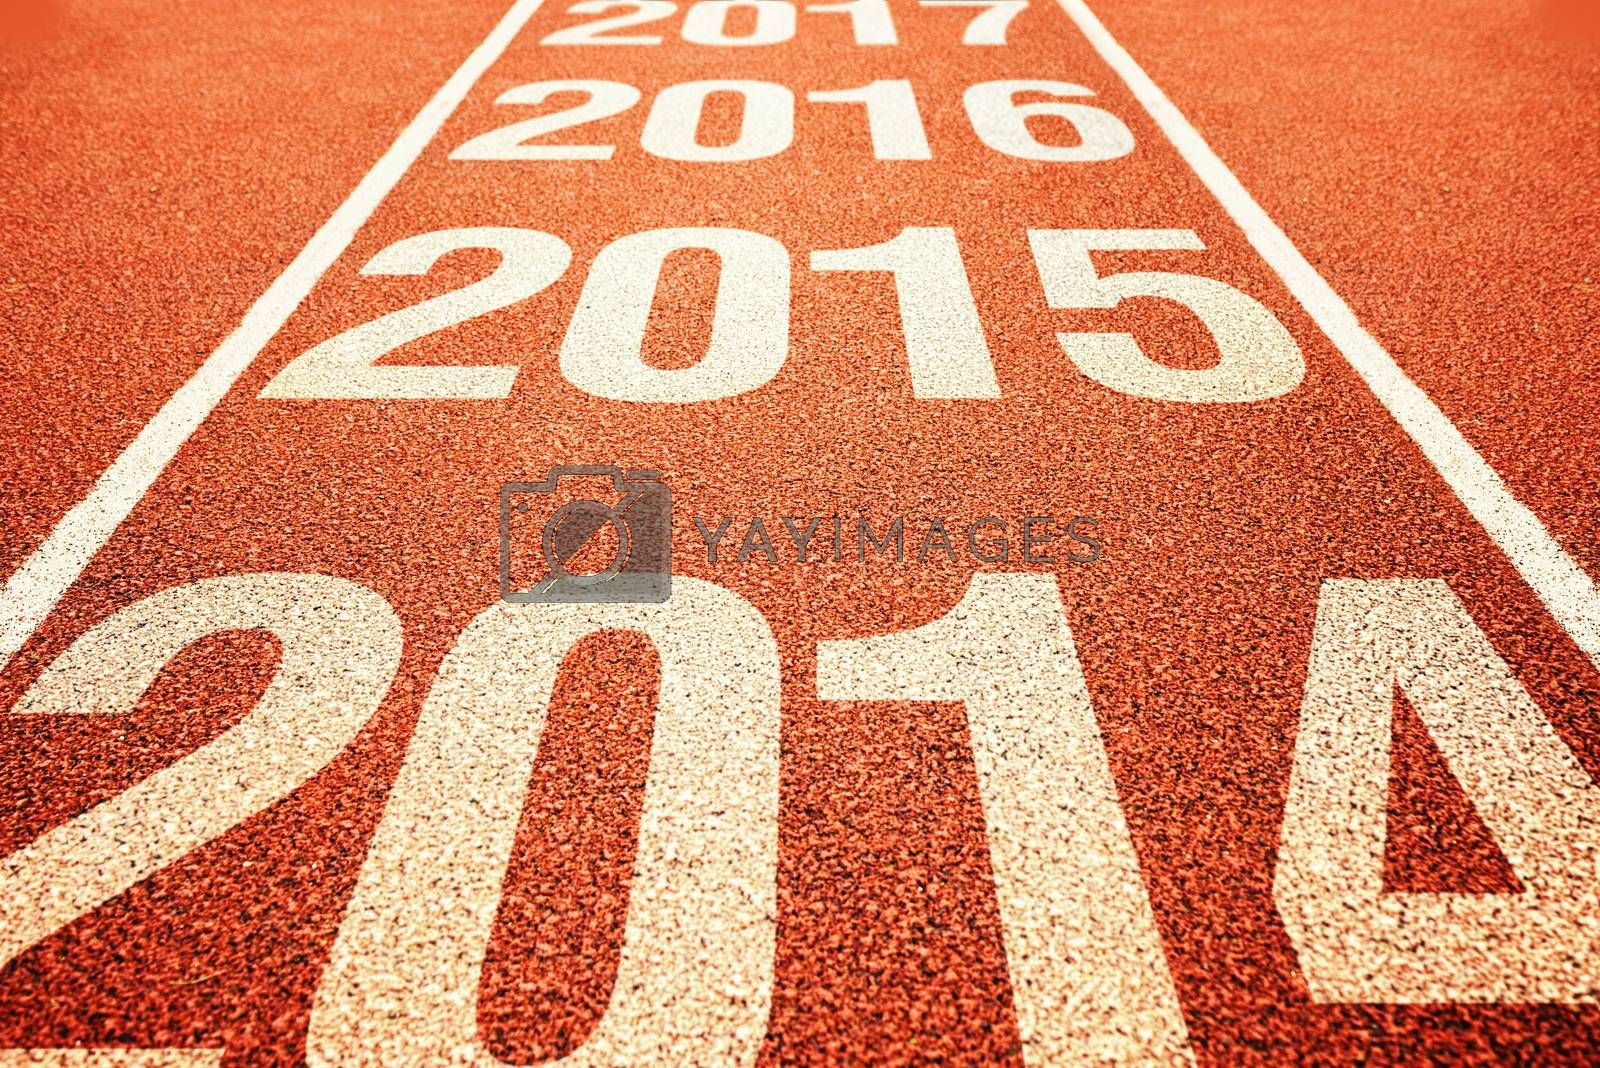 2015 on athletics all weather running track by stevanovicigor